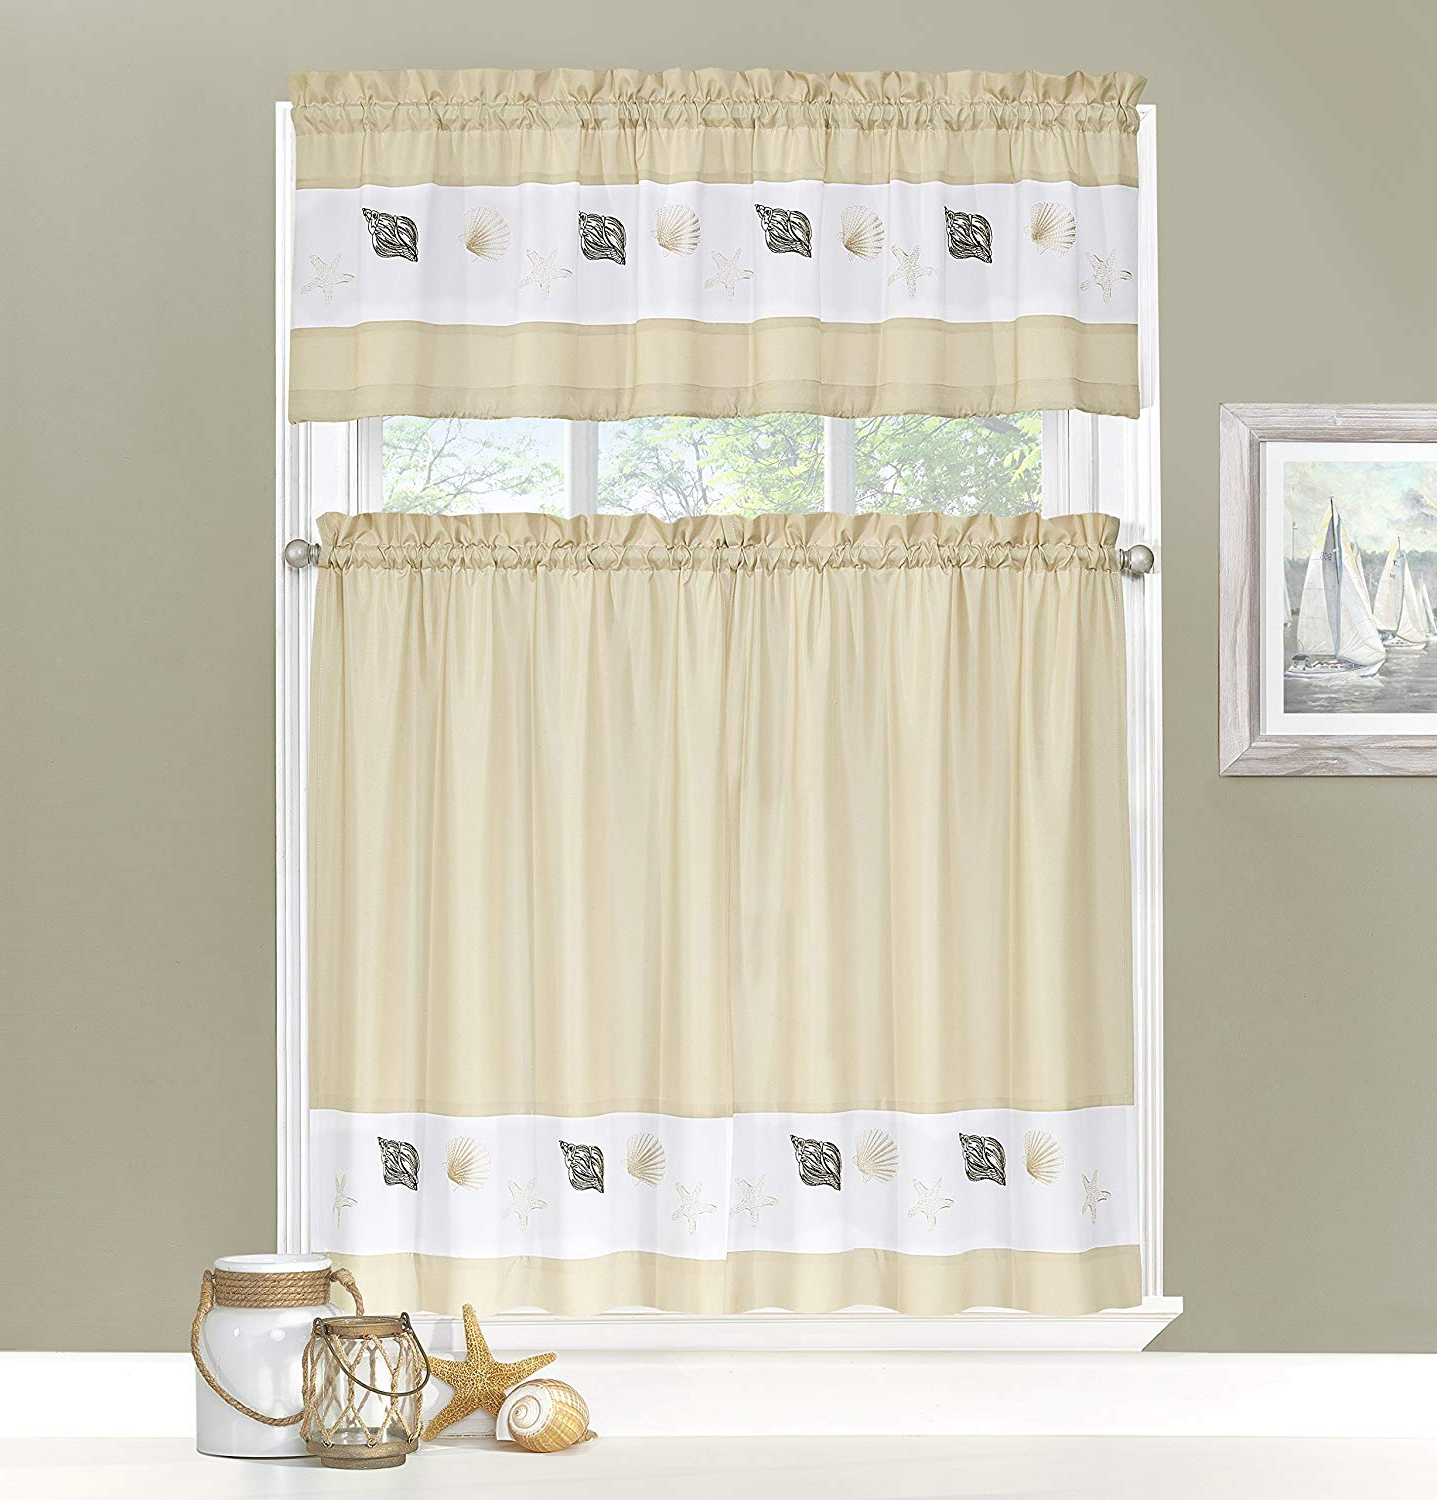 Ehs 14377052036Ecr Coastal 52 Inch36 Inch Tier And Valance Set, Ecru In Most Recently Released Coastal Tier And Valance Window Curtain Sets (Gallery 4 of 20)